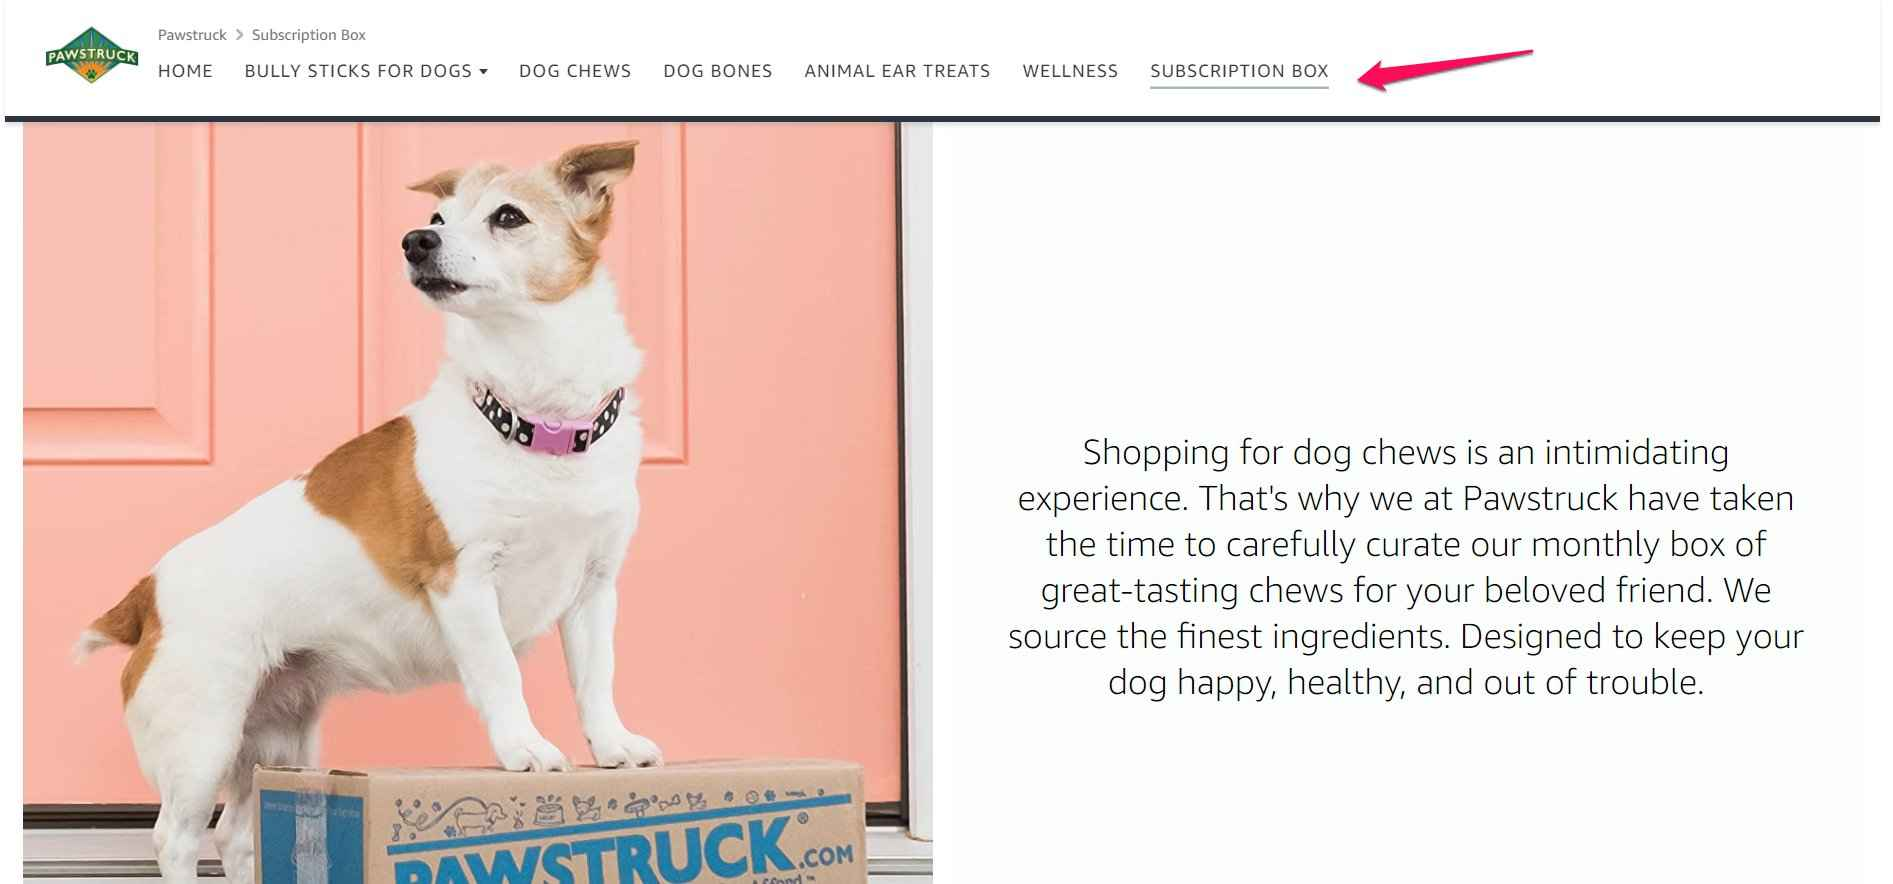 Amazon Storefront Example of Pawstruck showing off their subscription box tab as a single SKU promotion